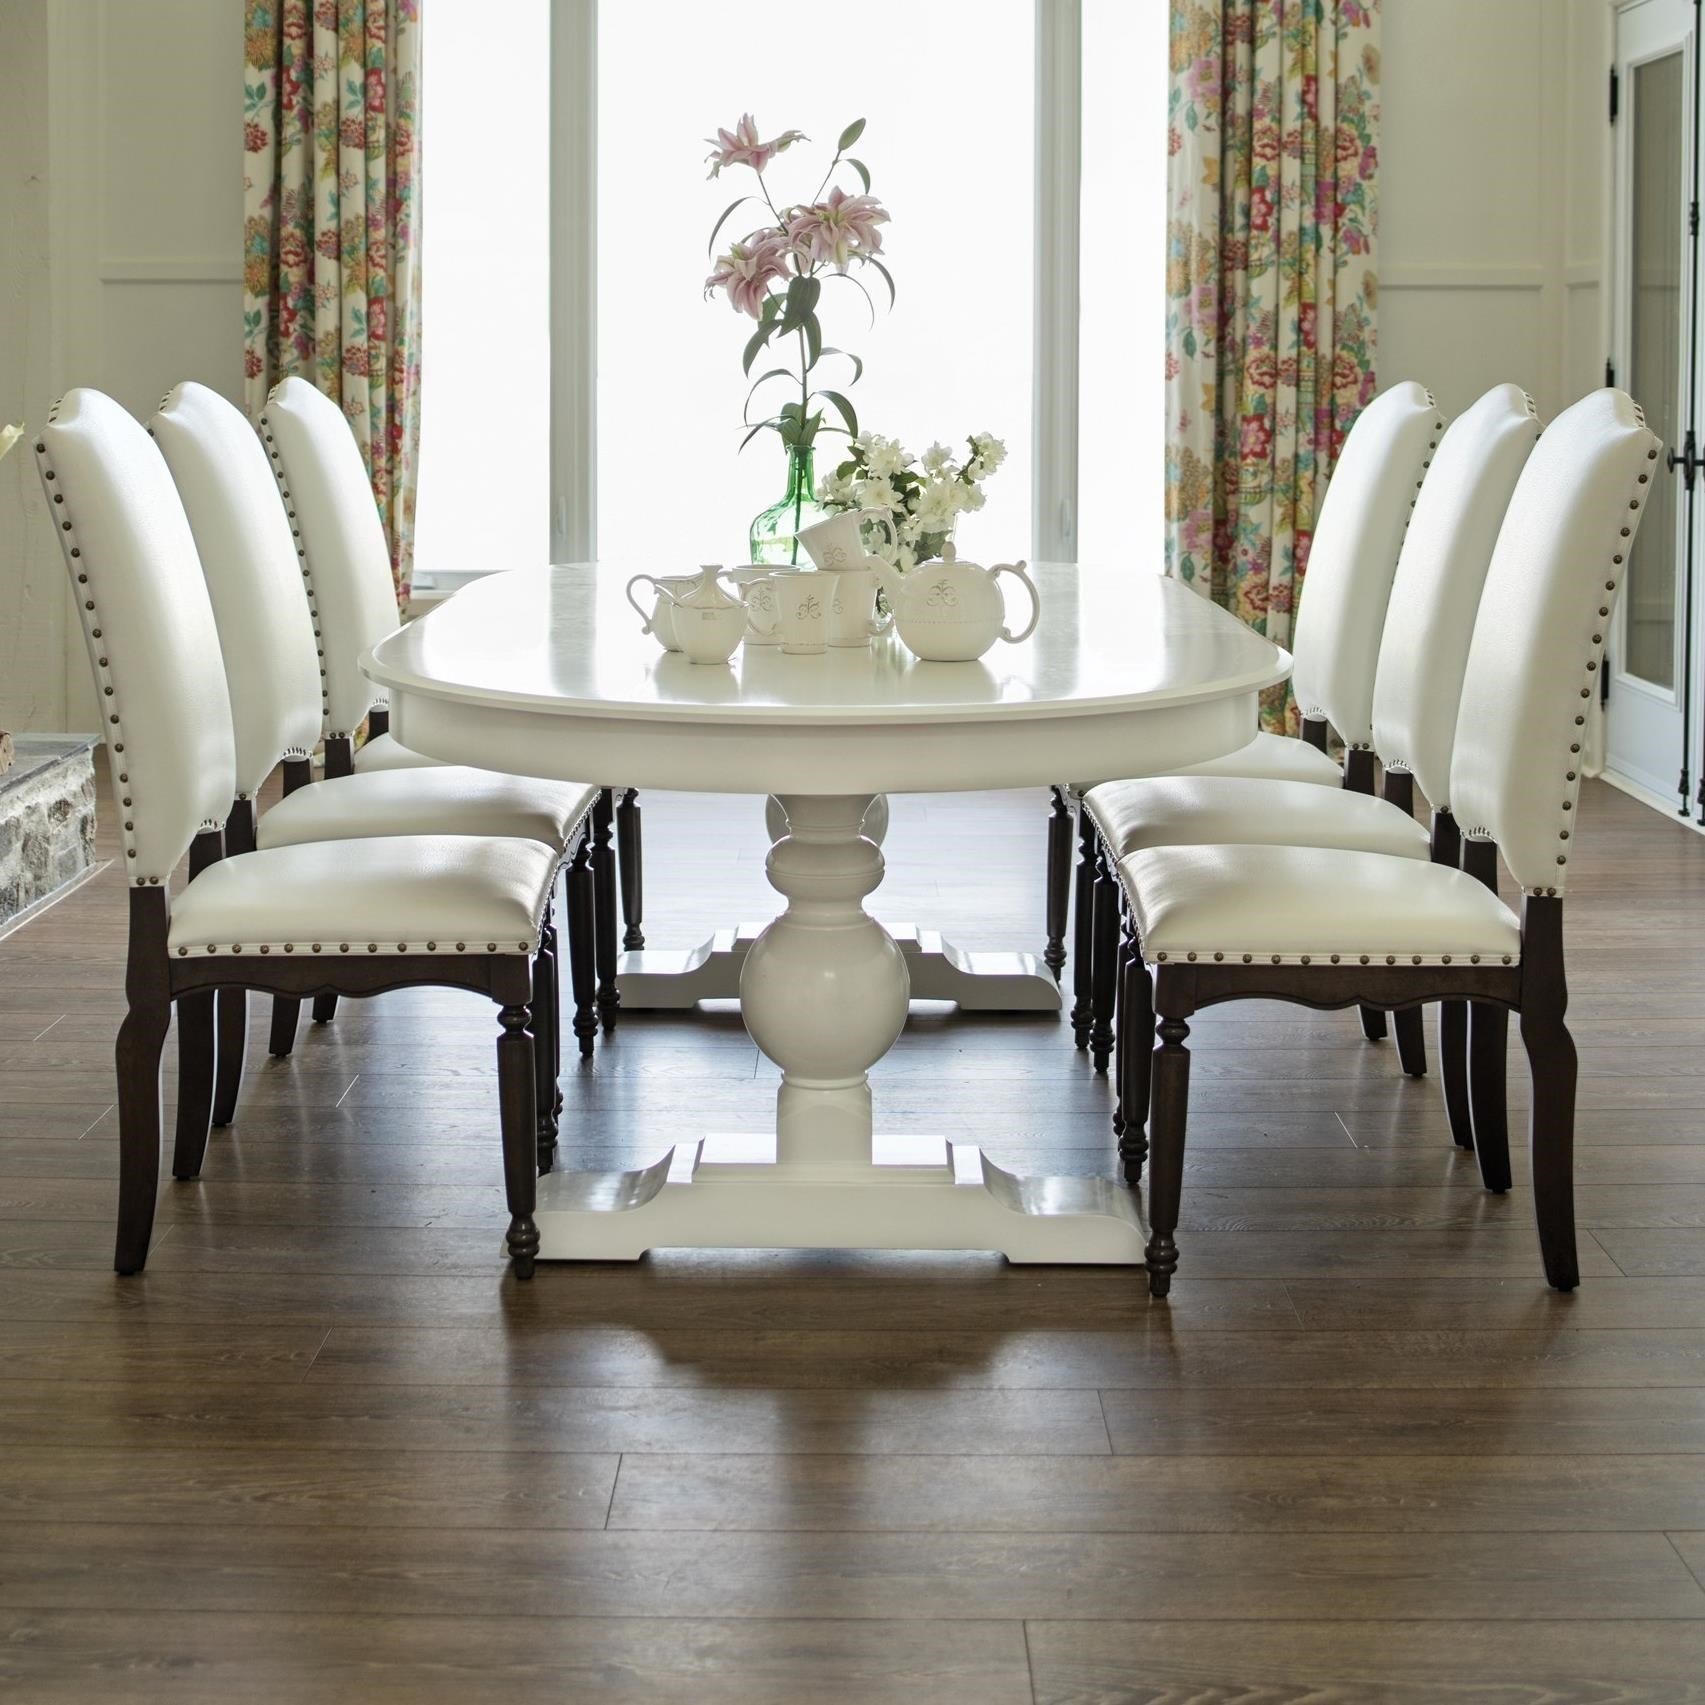 oval dining room. canadel custom diningcustomizable oval dining table set room